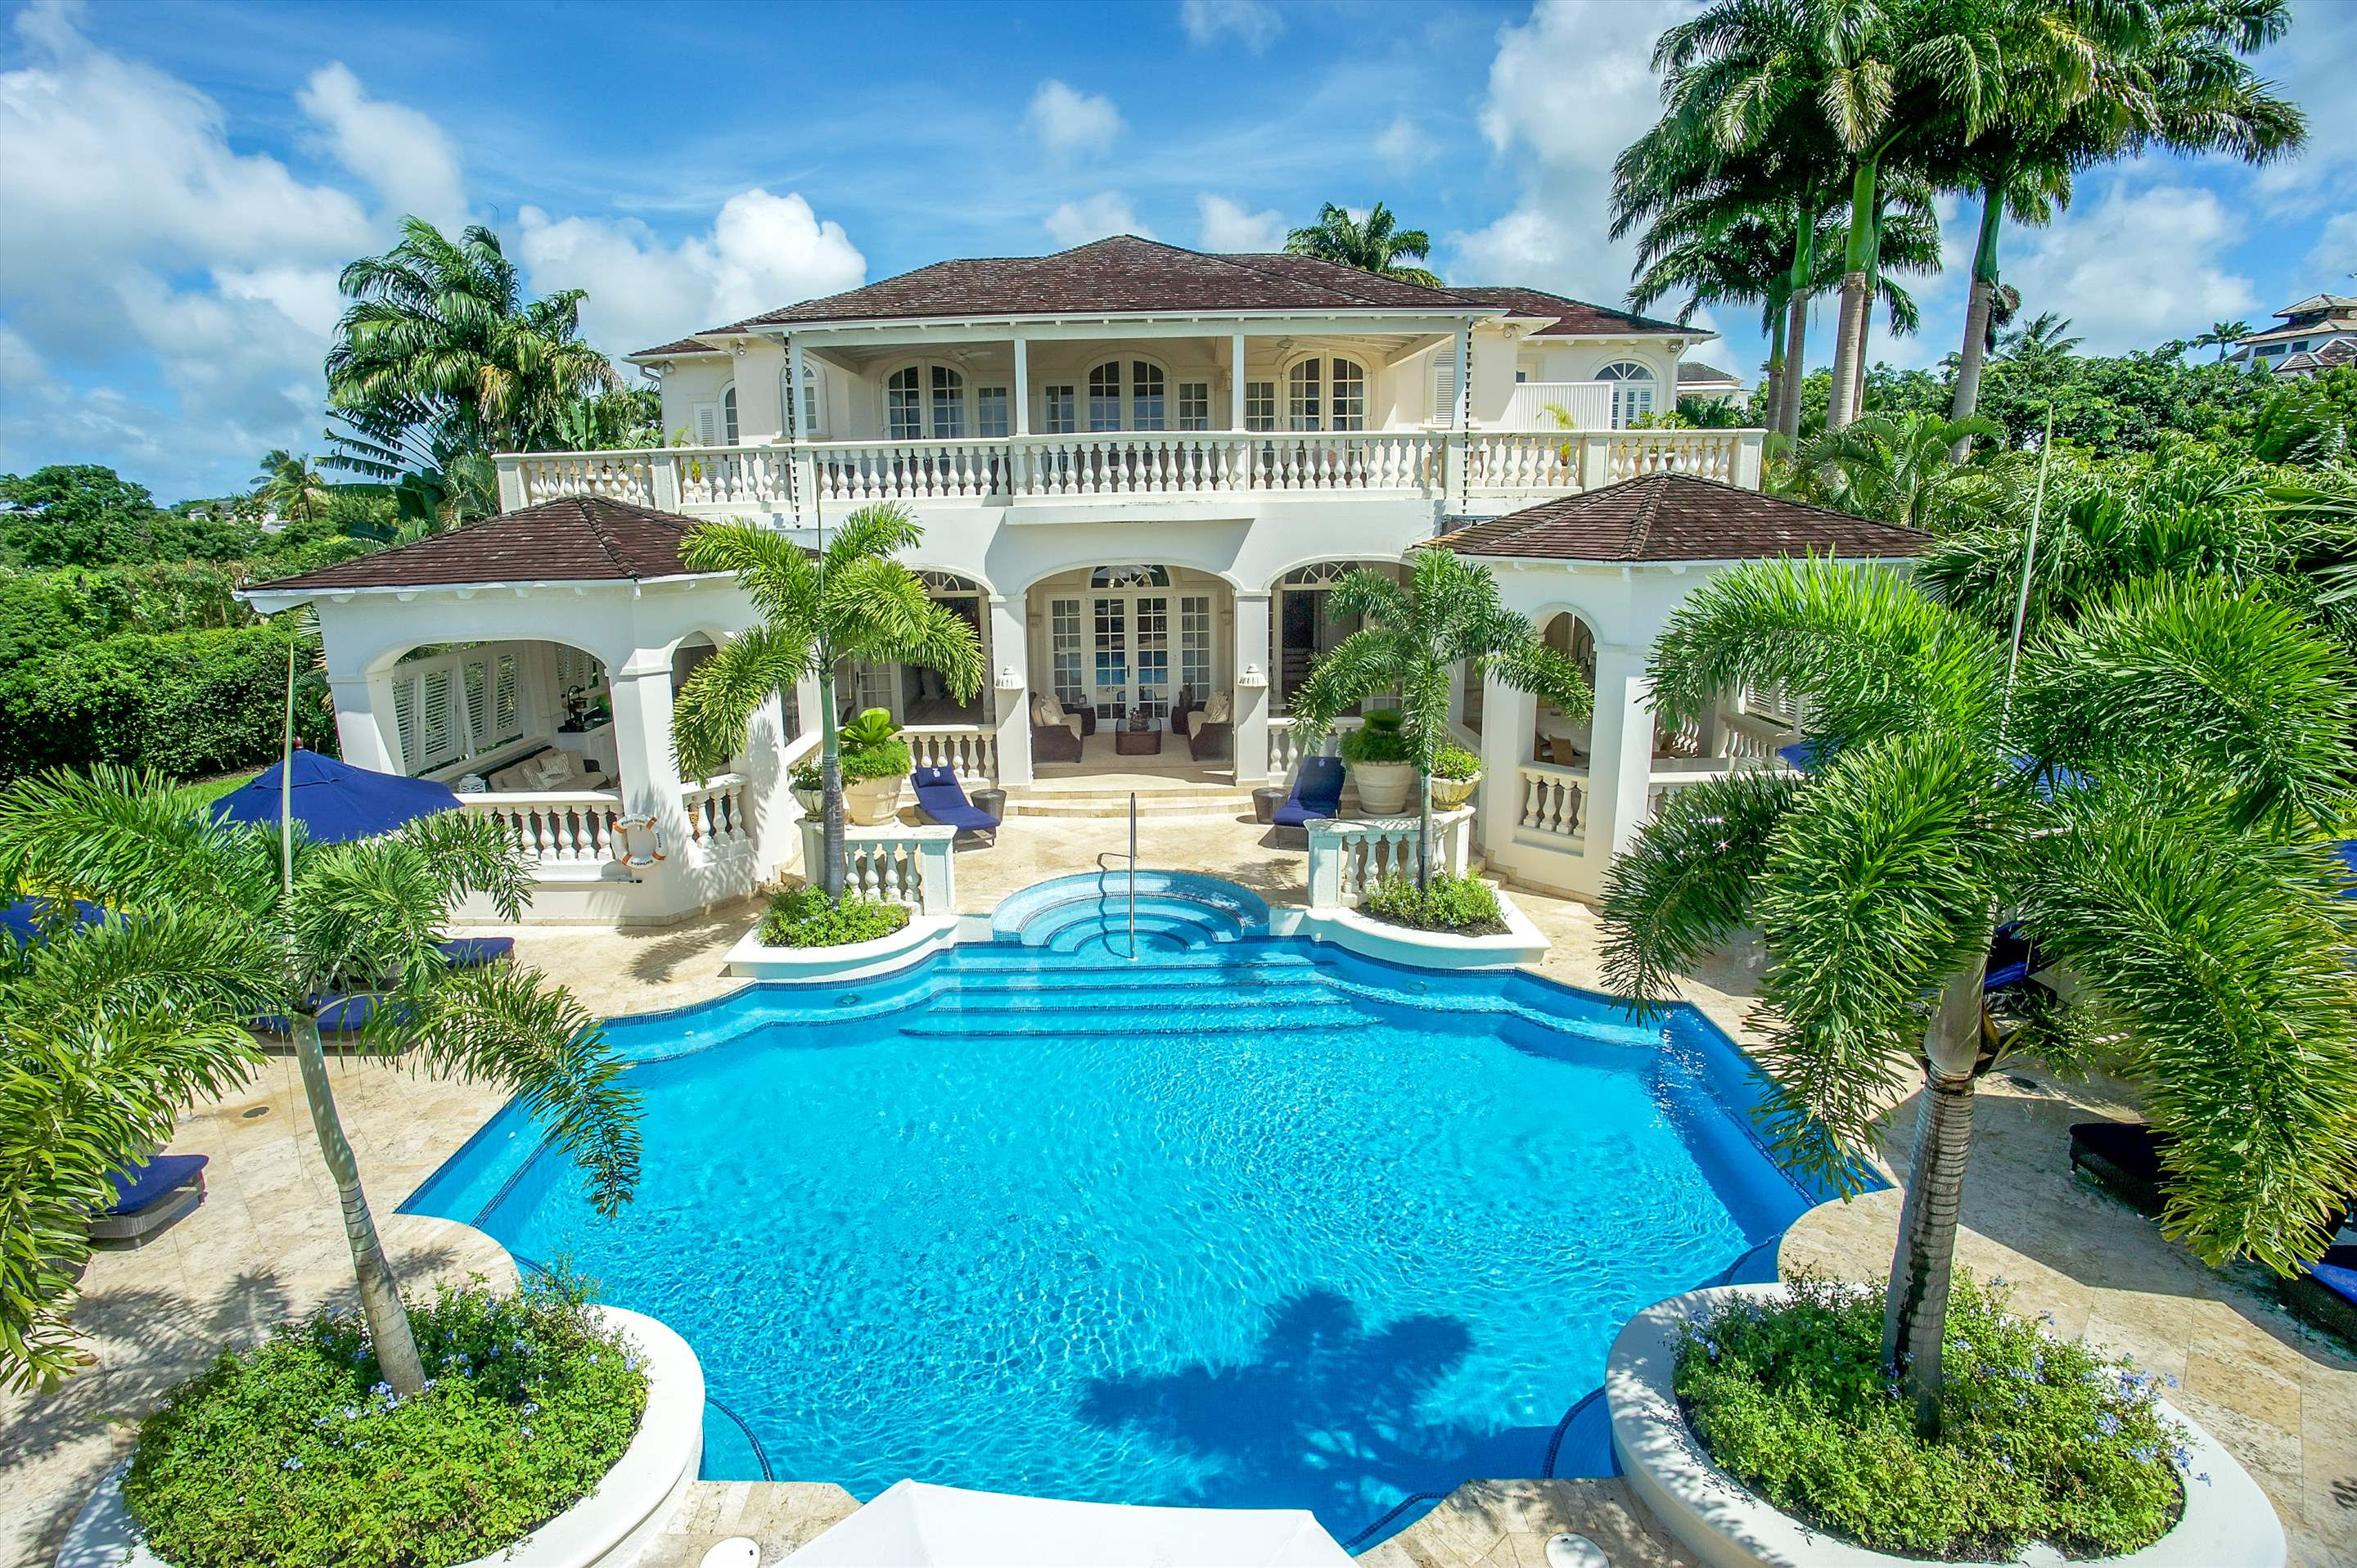 Plantation House, Royal Westmoreland, 6 bedroom, 6 bedroom villa in St. James & West Coast, Barbados